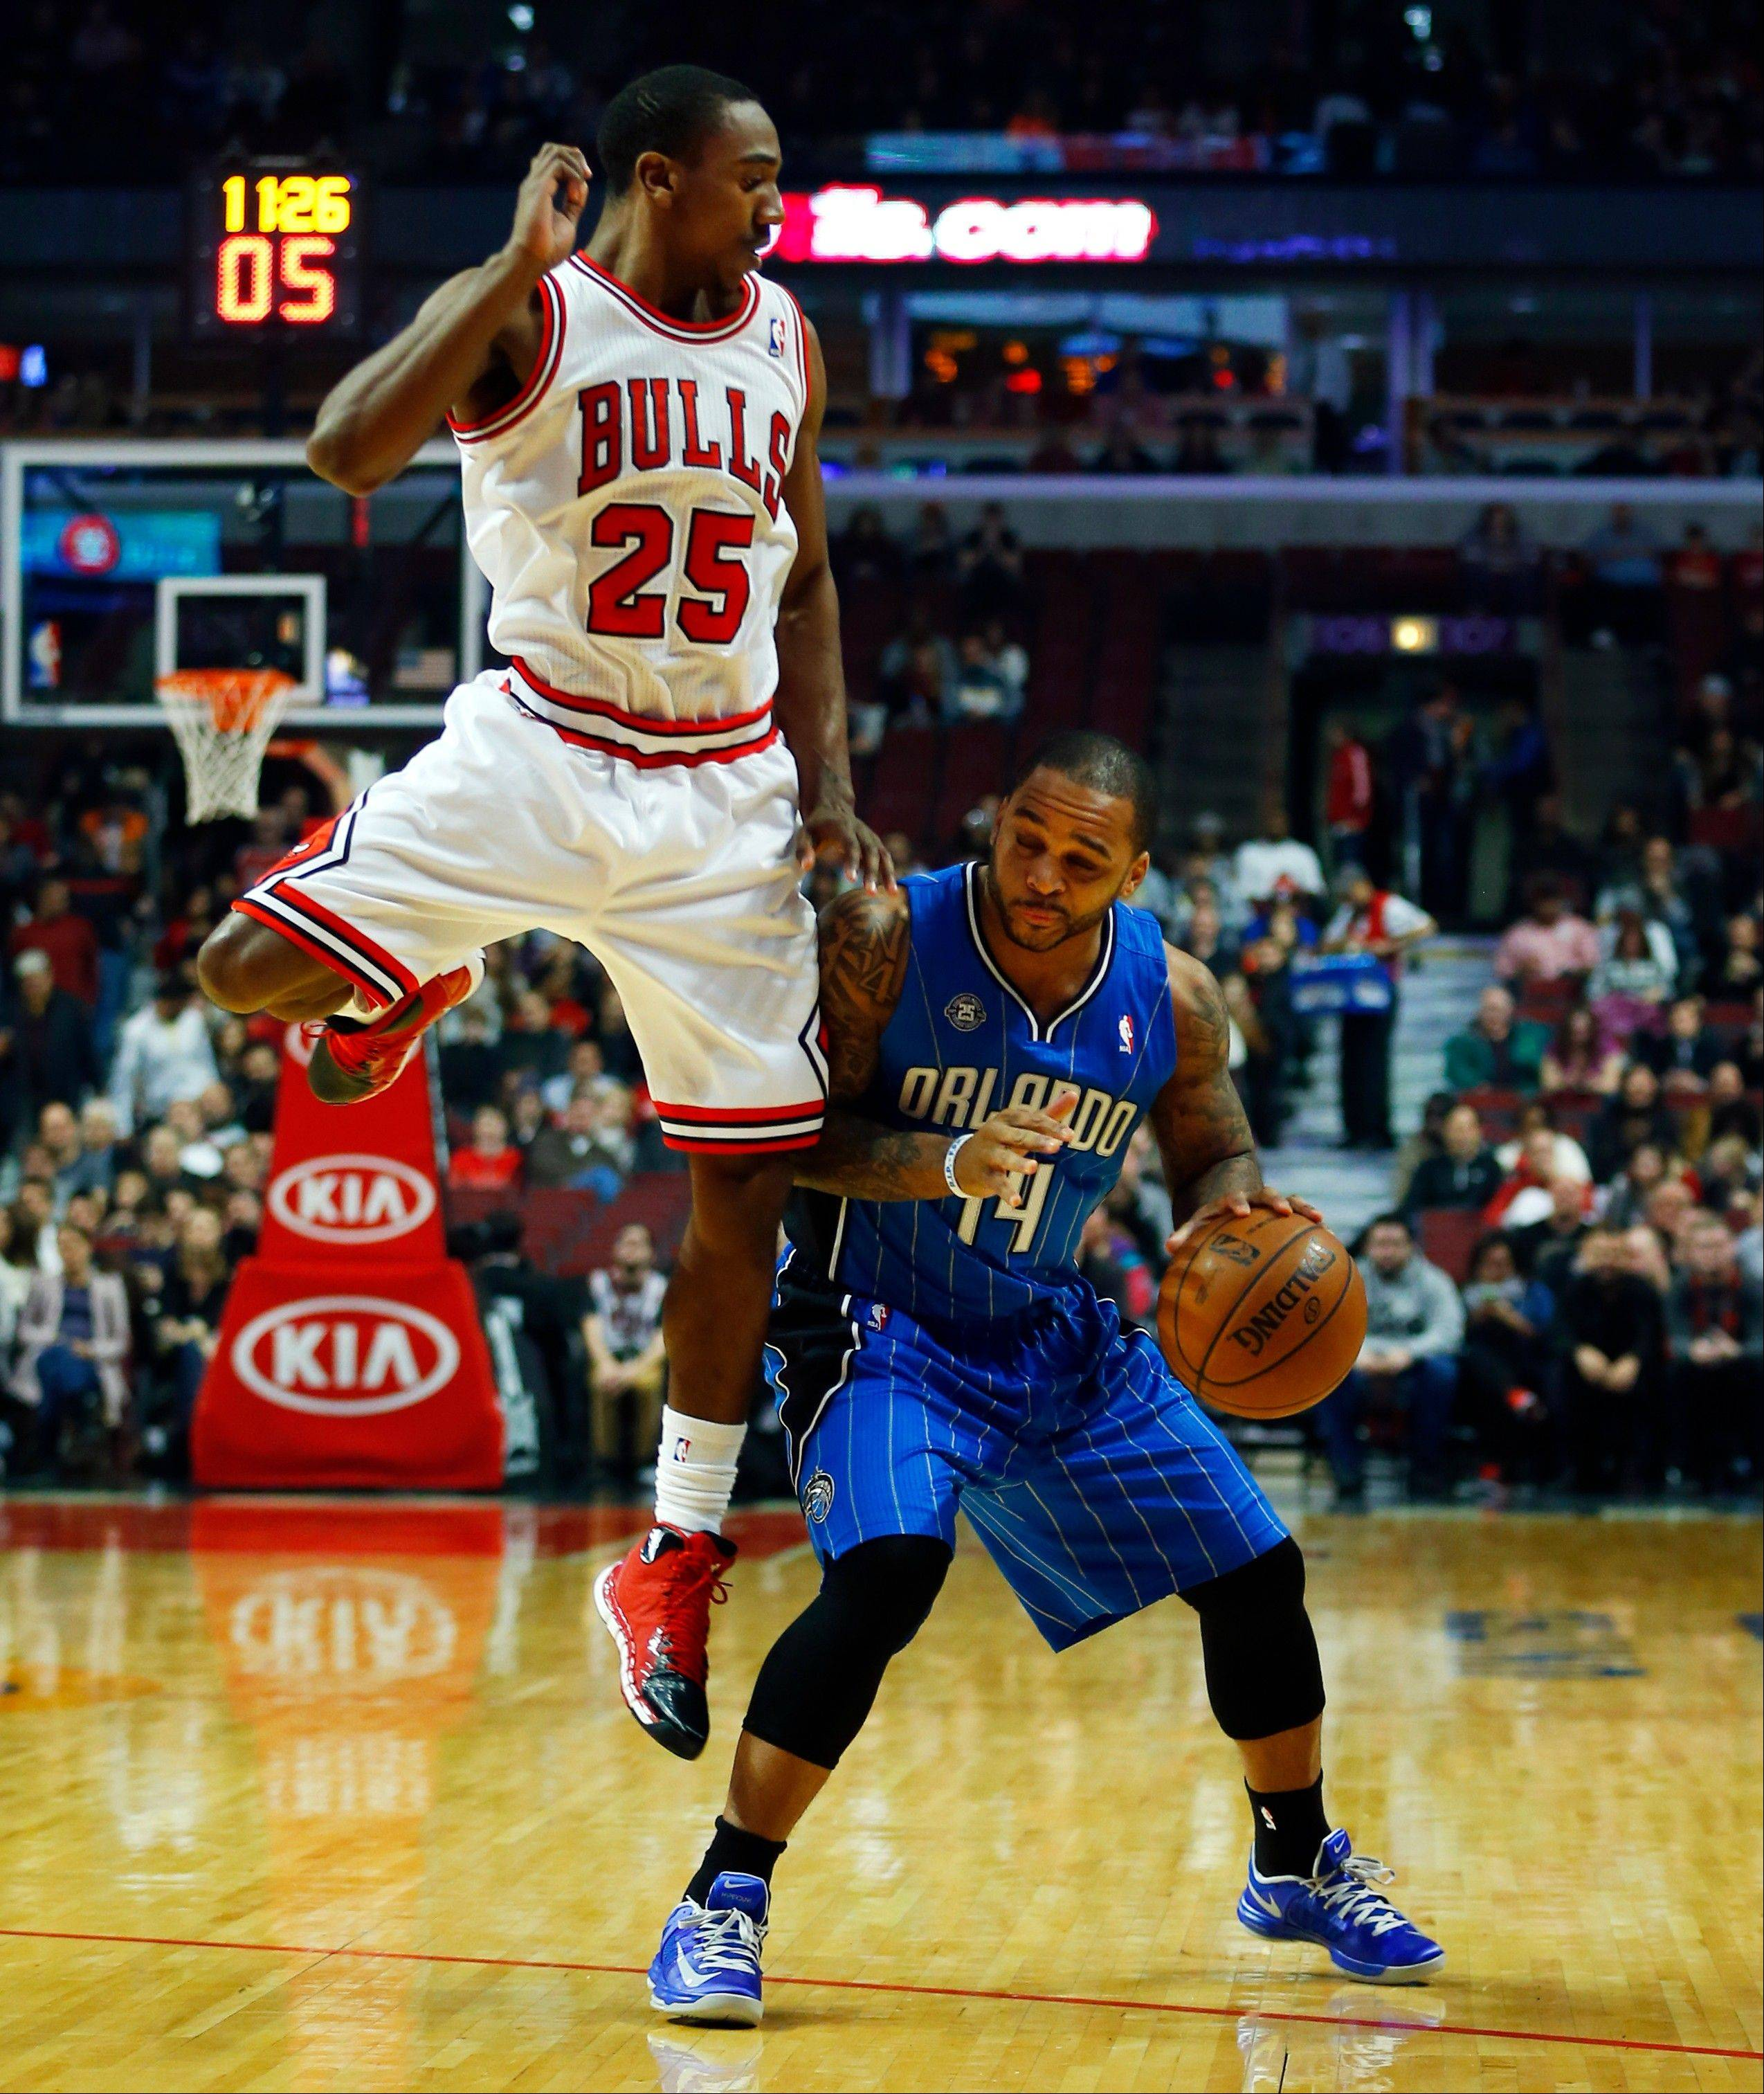 Bulls point guard Marquis Teague (25) runs into Orlando Magic point guard Jameer Nelson (14) during the first half of an NBA basketball game in Chicago on Monday, Dec. 16, 2013.